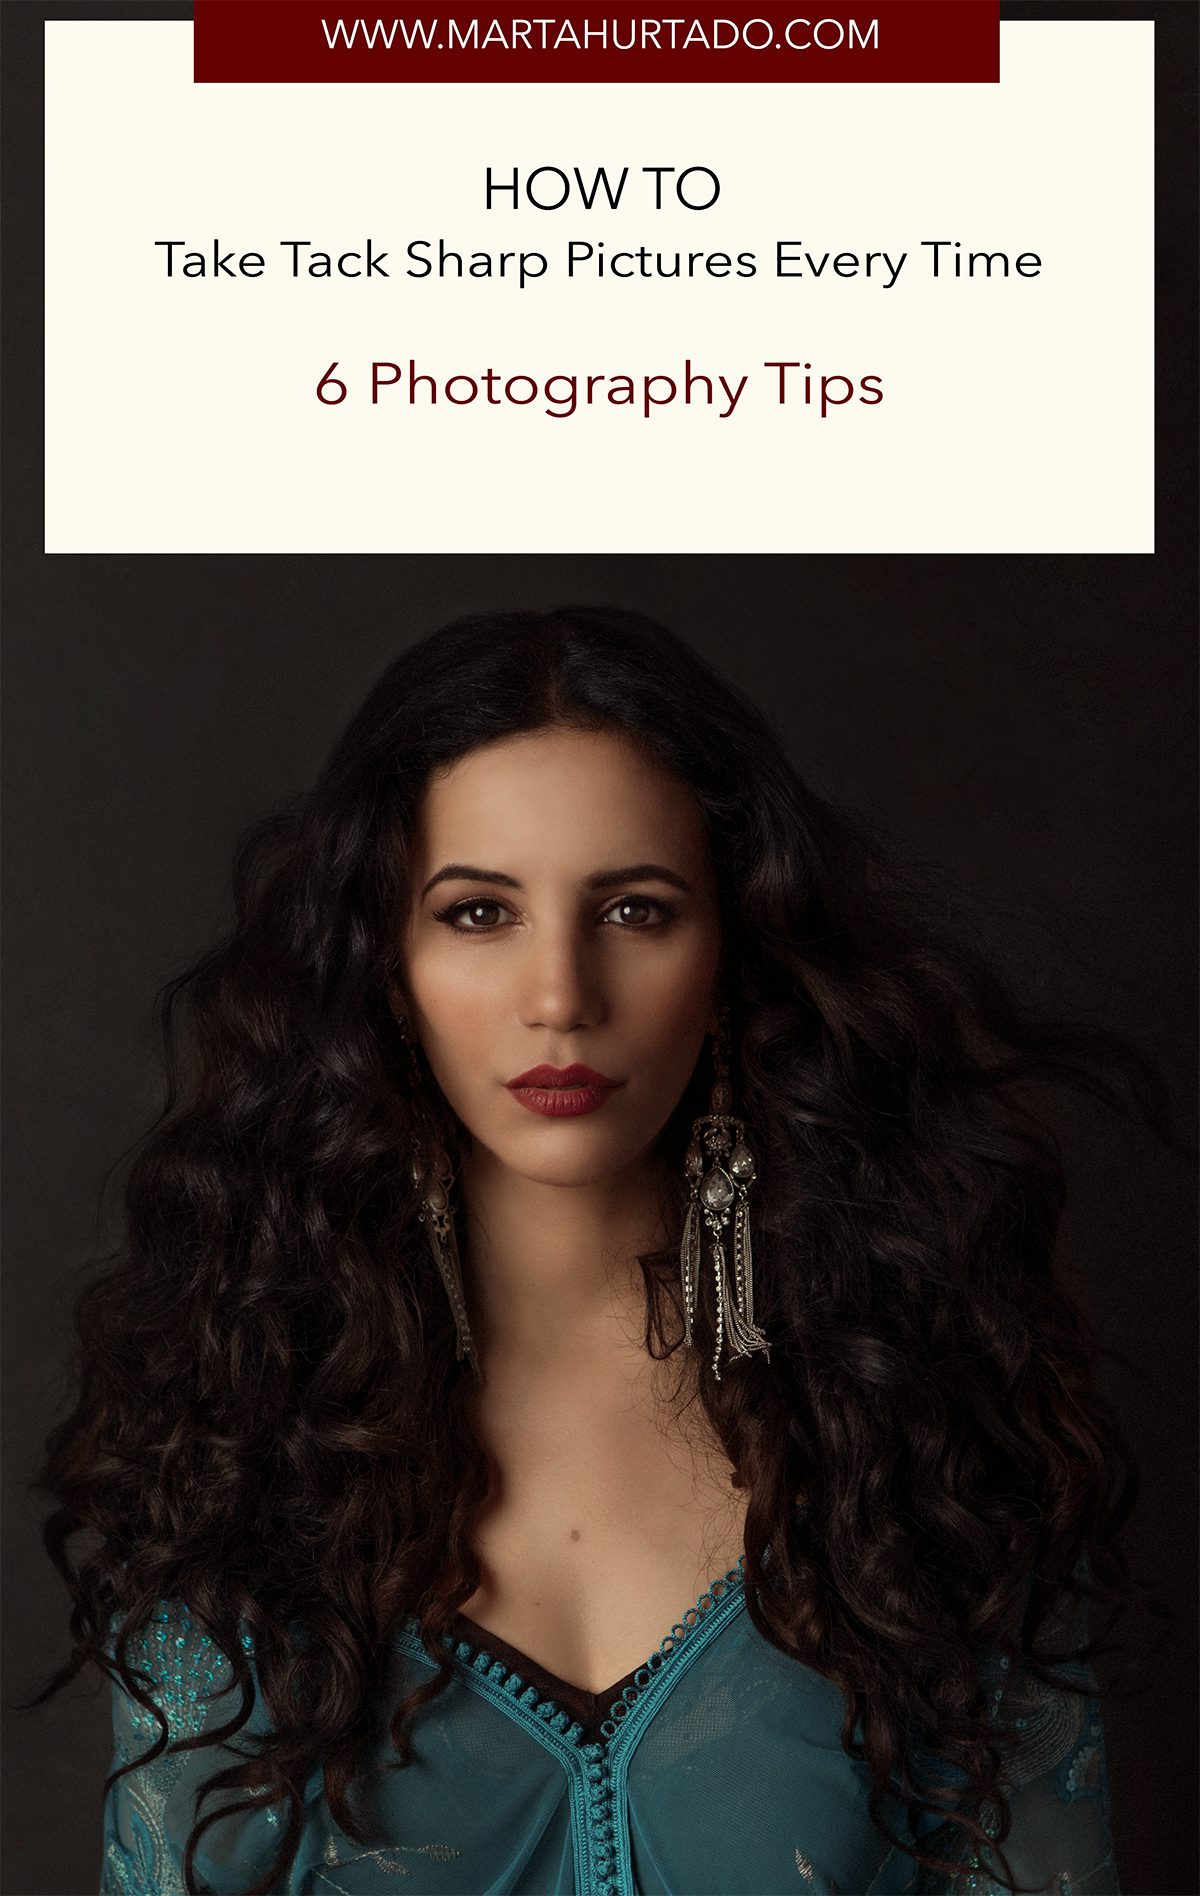 6 Photography Tips on How to Take Tack Sharp Pictures